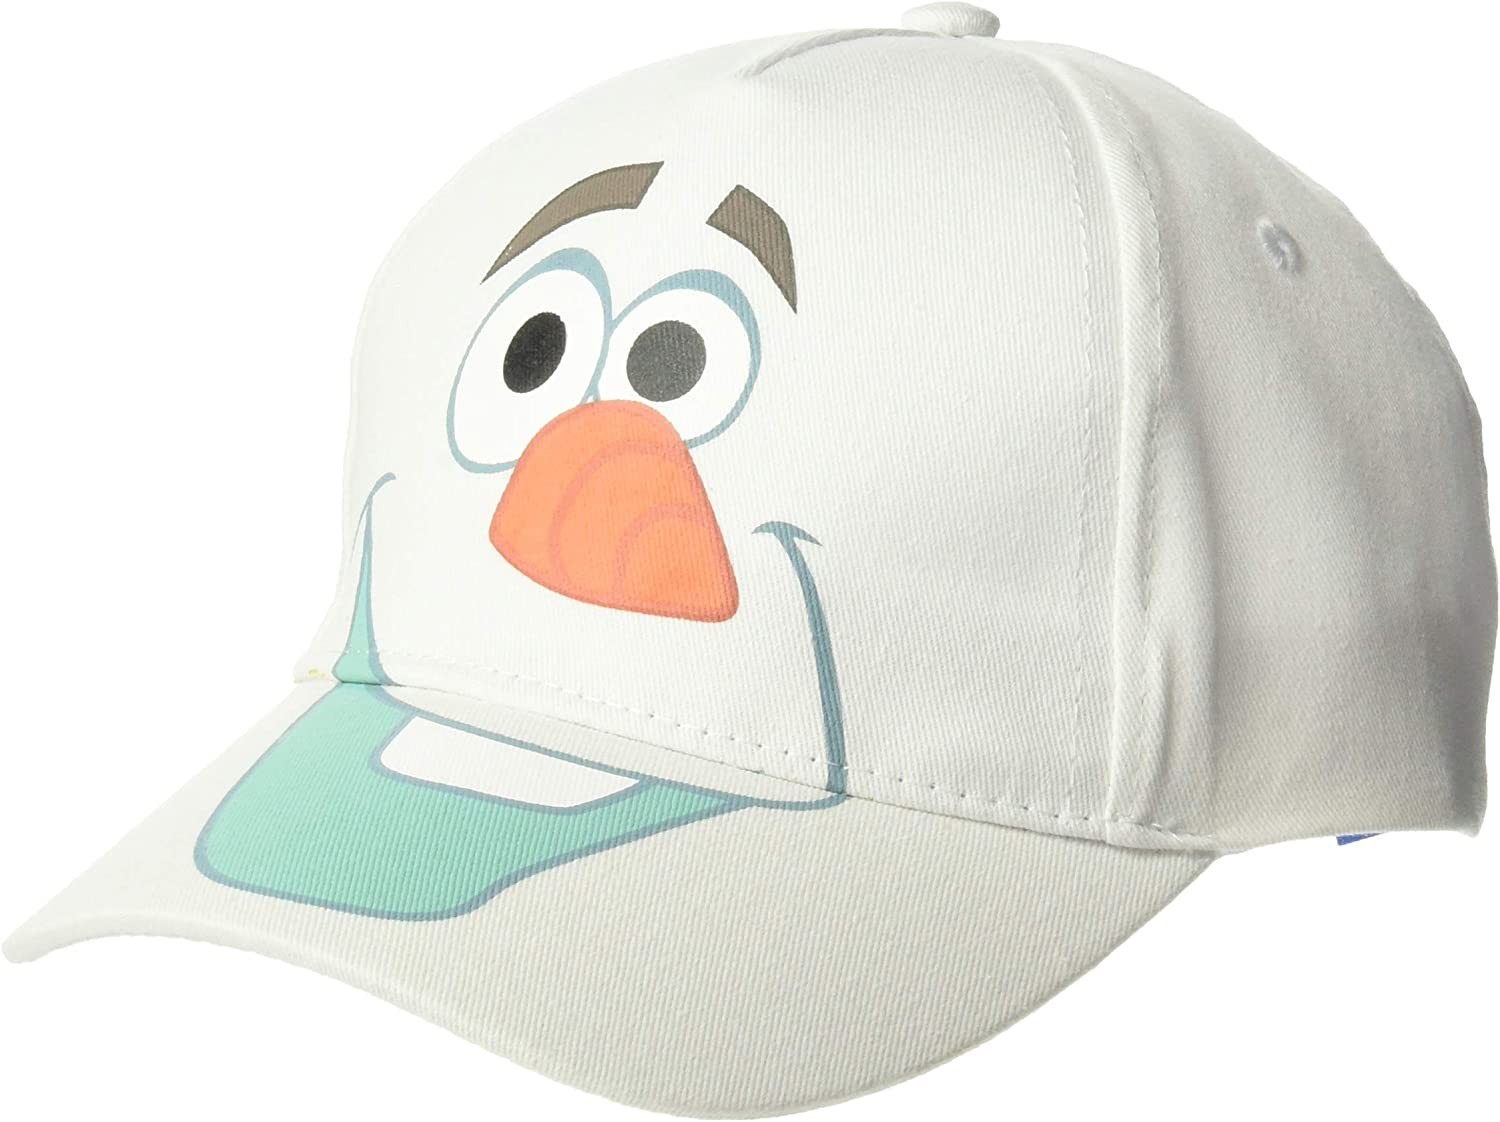 Disney Frozen Olaf The Snowman Peruvian Style Winter Hat White